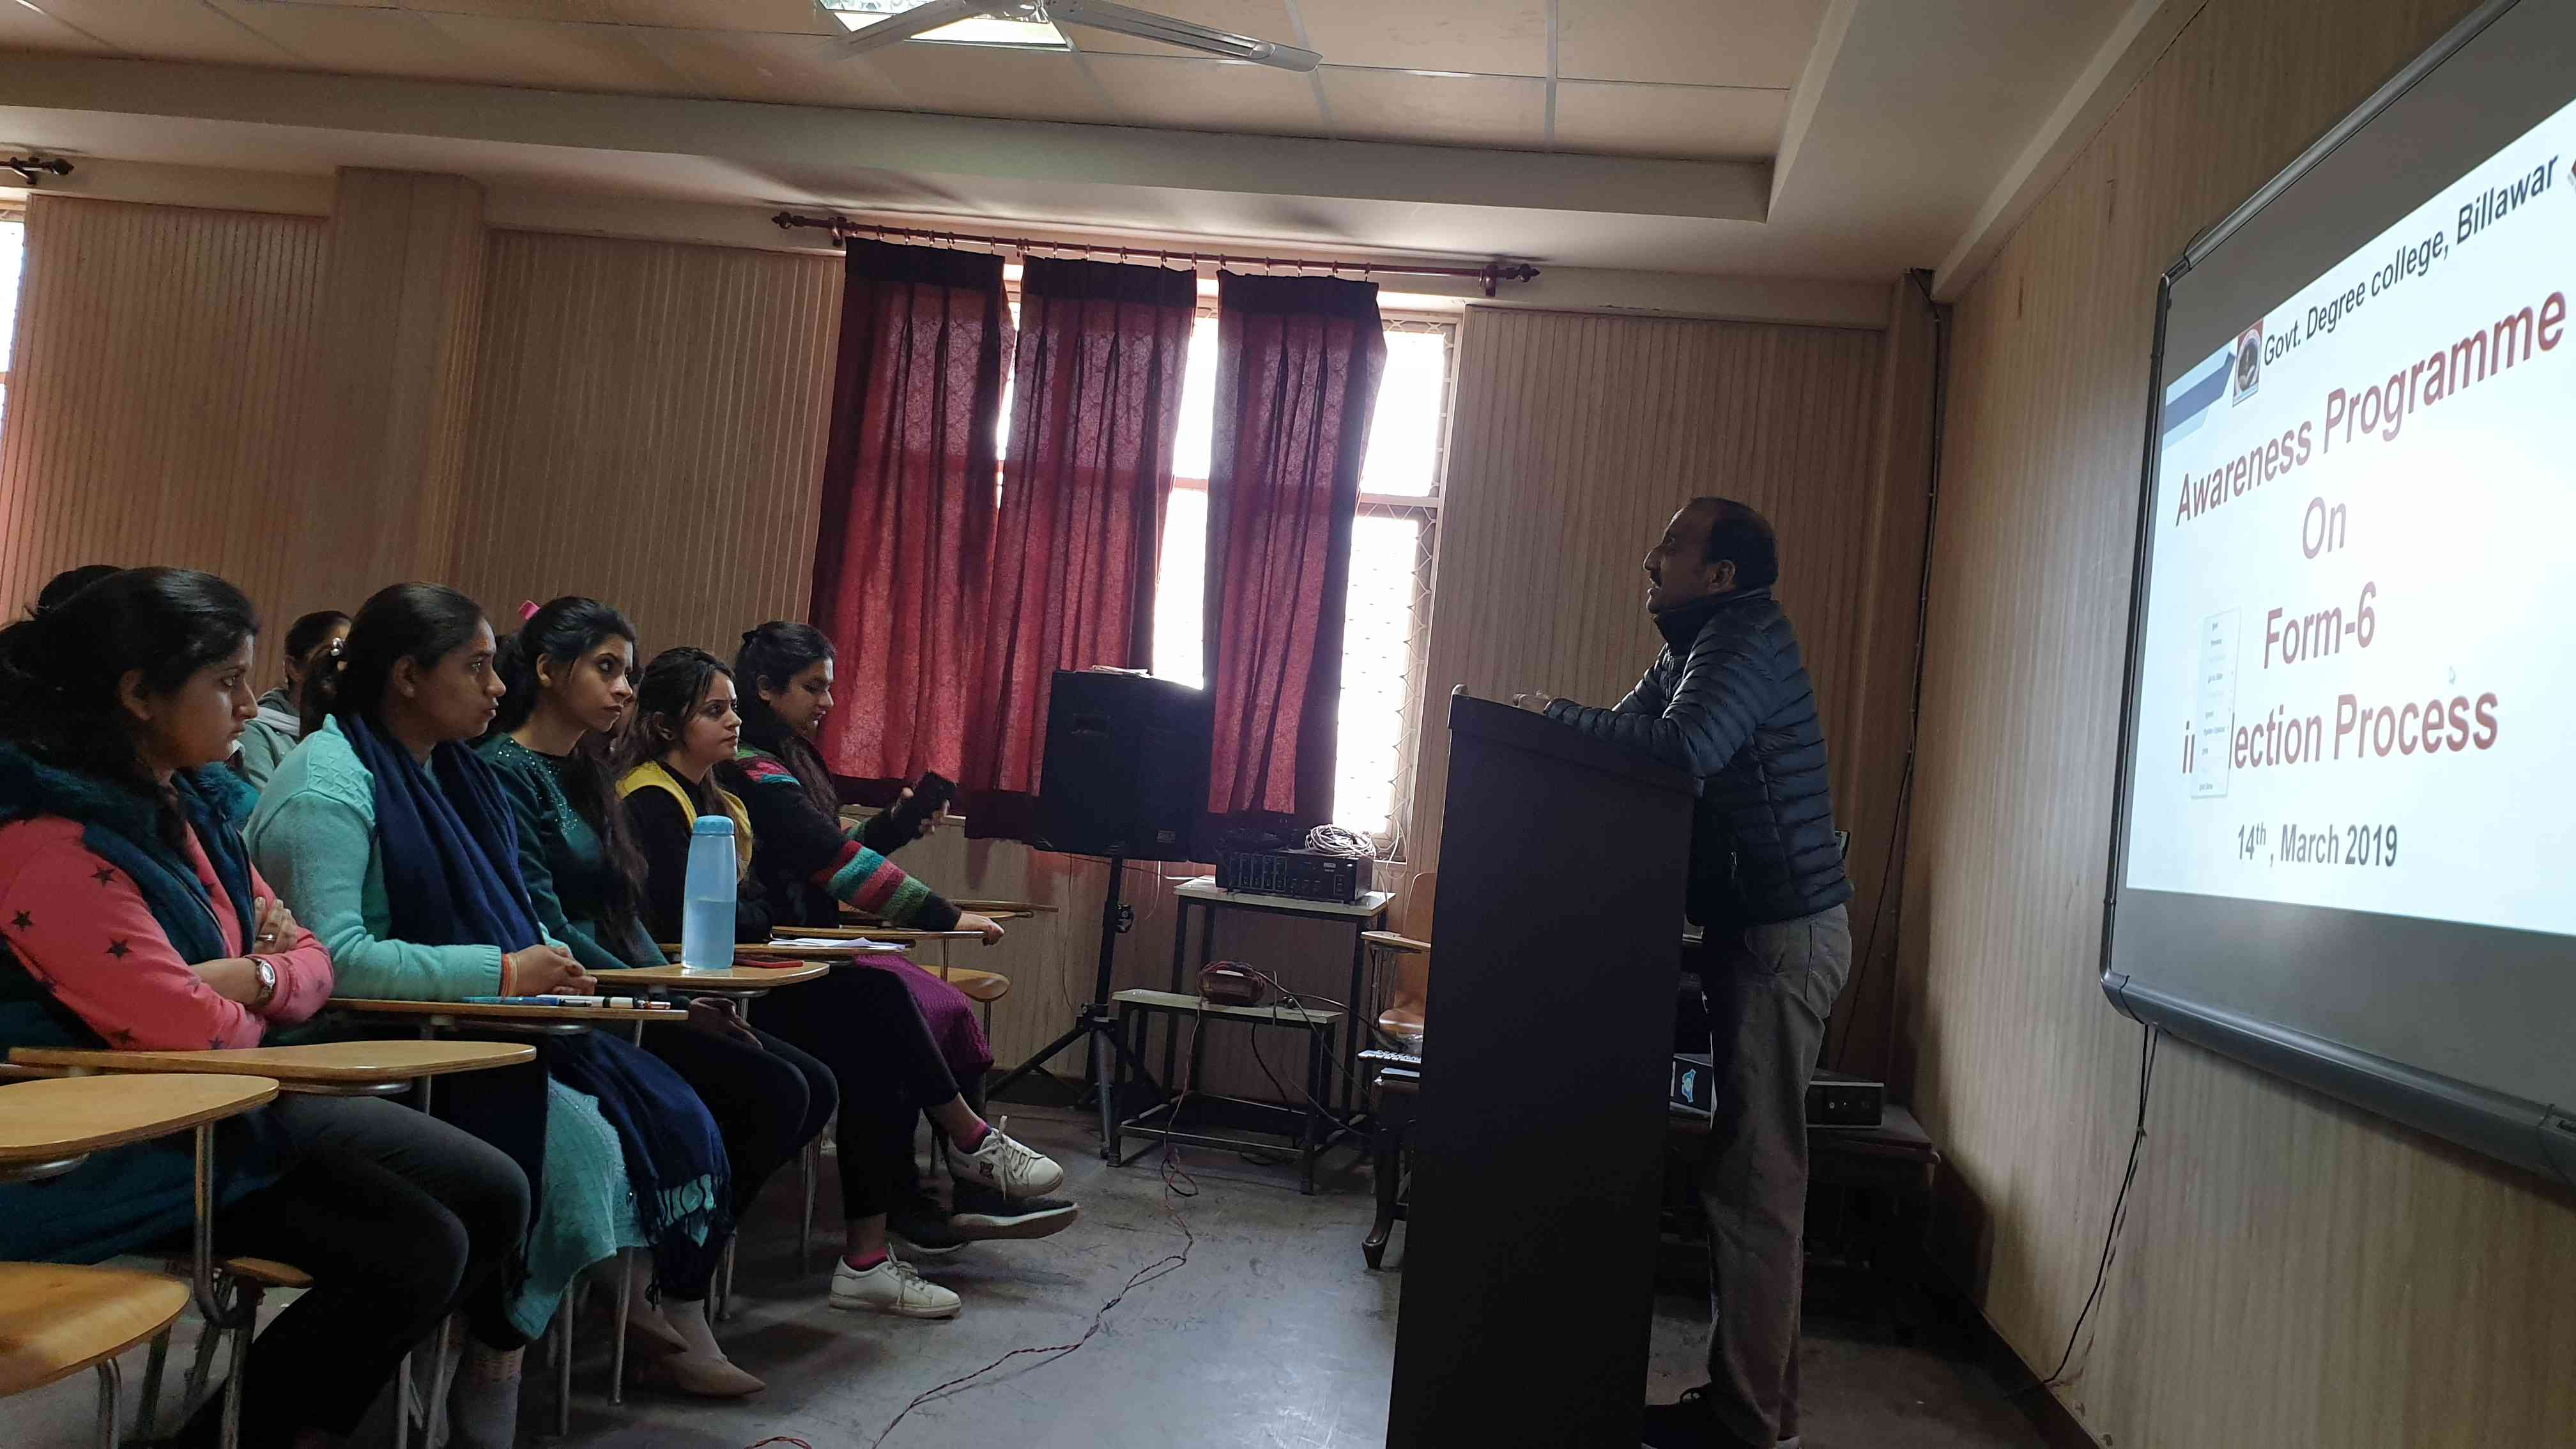 Awareness programme in Form-6 in election process